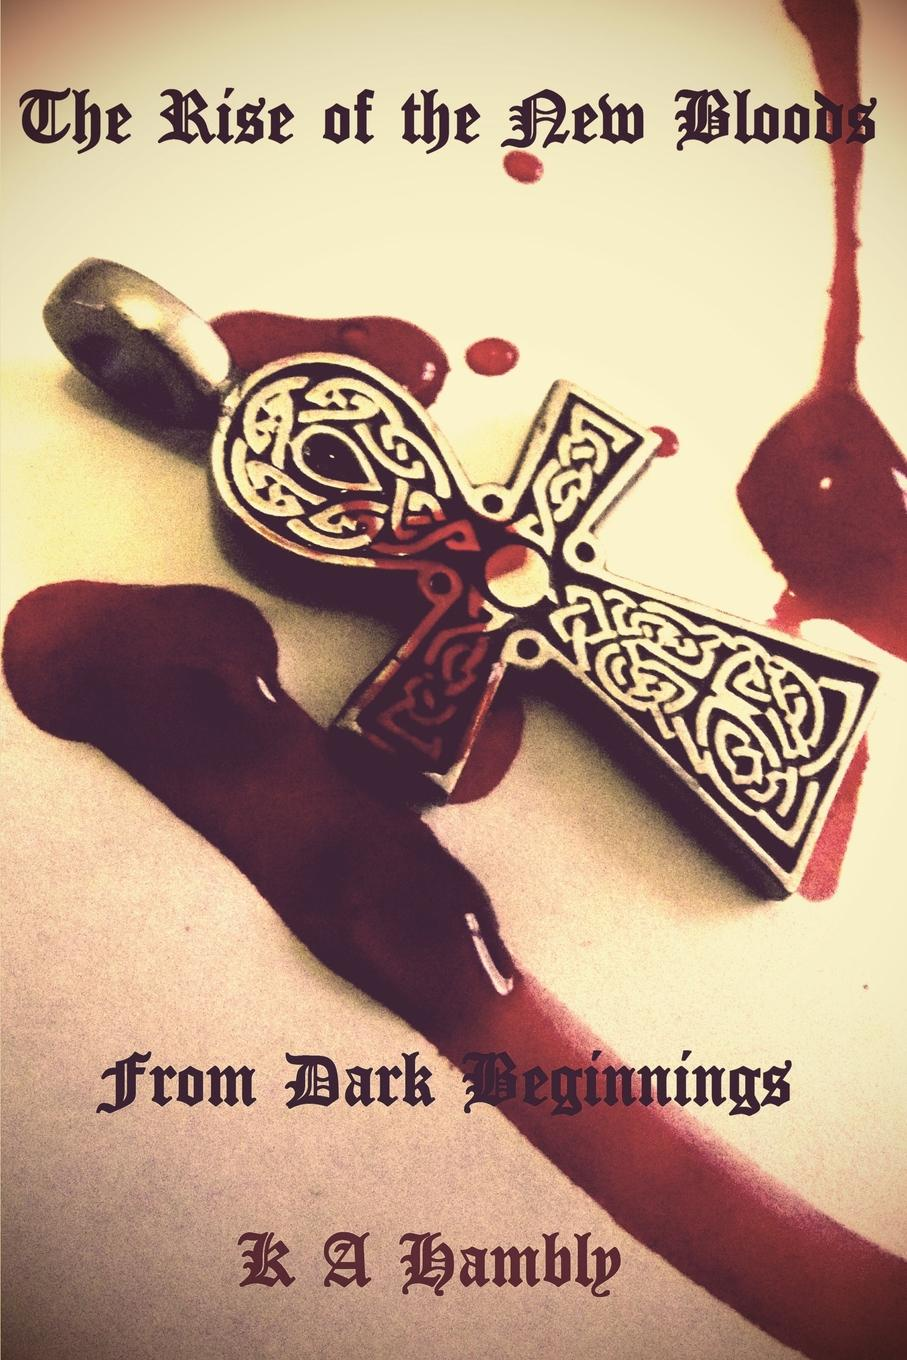 Kelly A Hambly The Rise of the New Bloods, From Dark Beginnings gothic vampires from hell